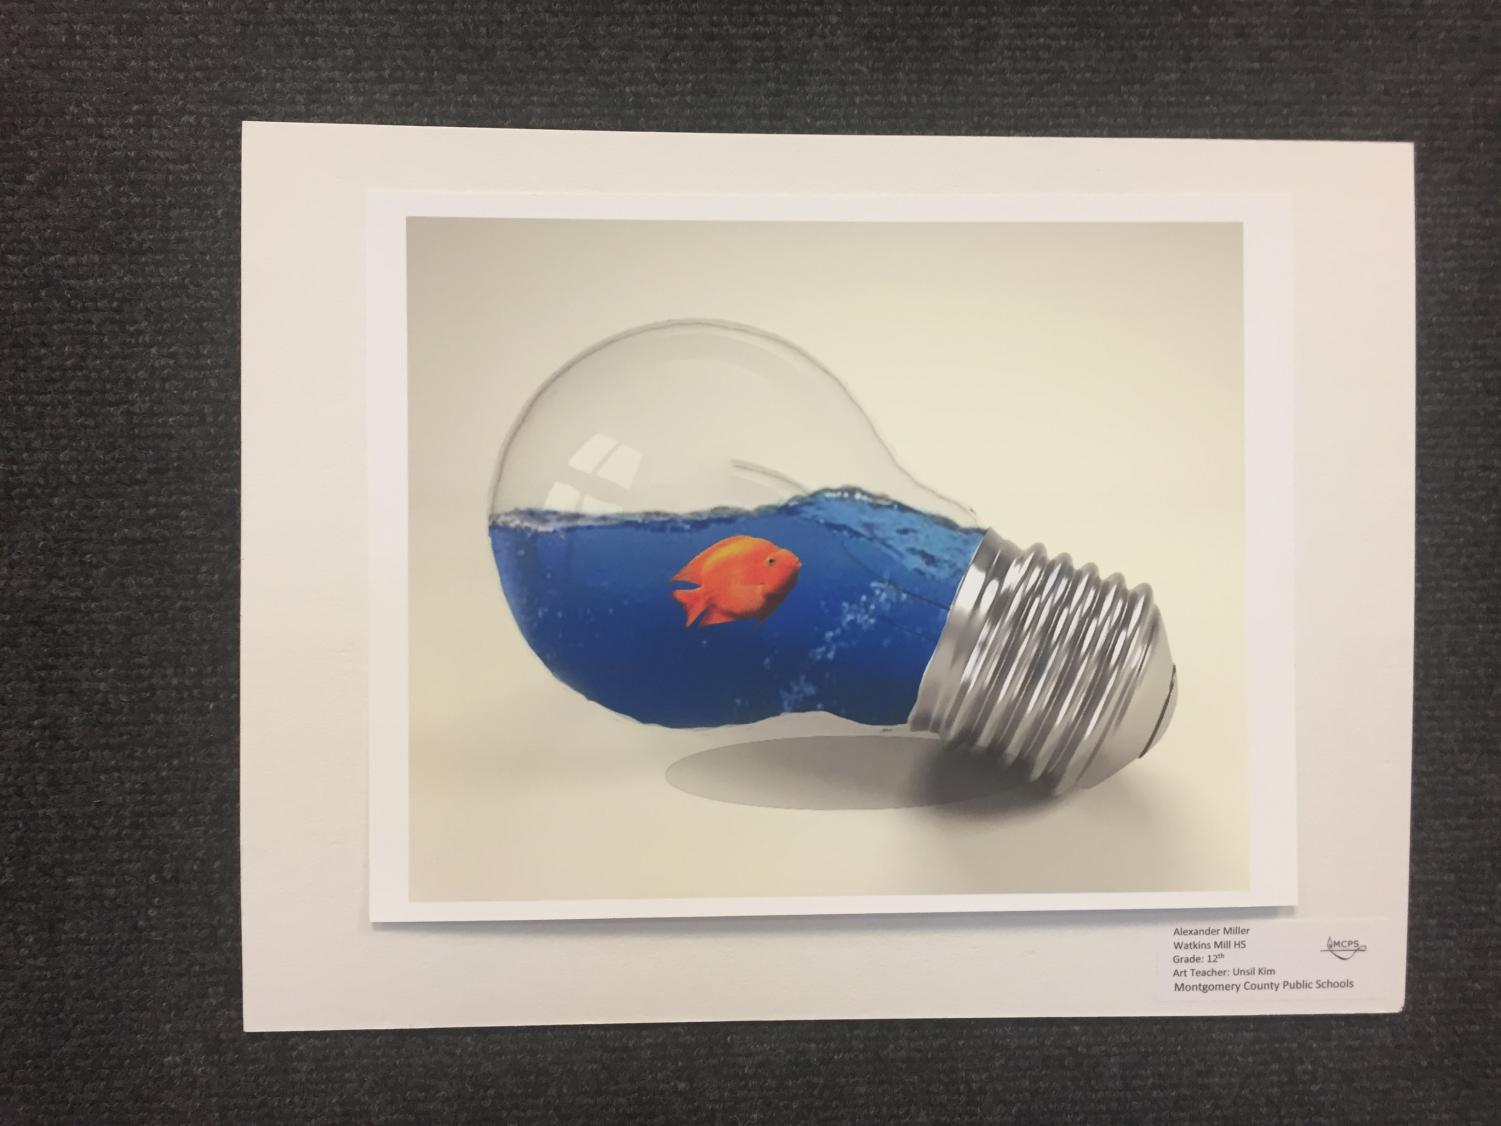 Photoshop+Artwork+by+Senior+Alexander+Miller+of+a+fish+in+a+lightbulb+in+the+Watkins+Mill+High+School+Art+Show+2019